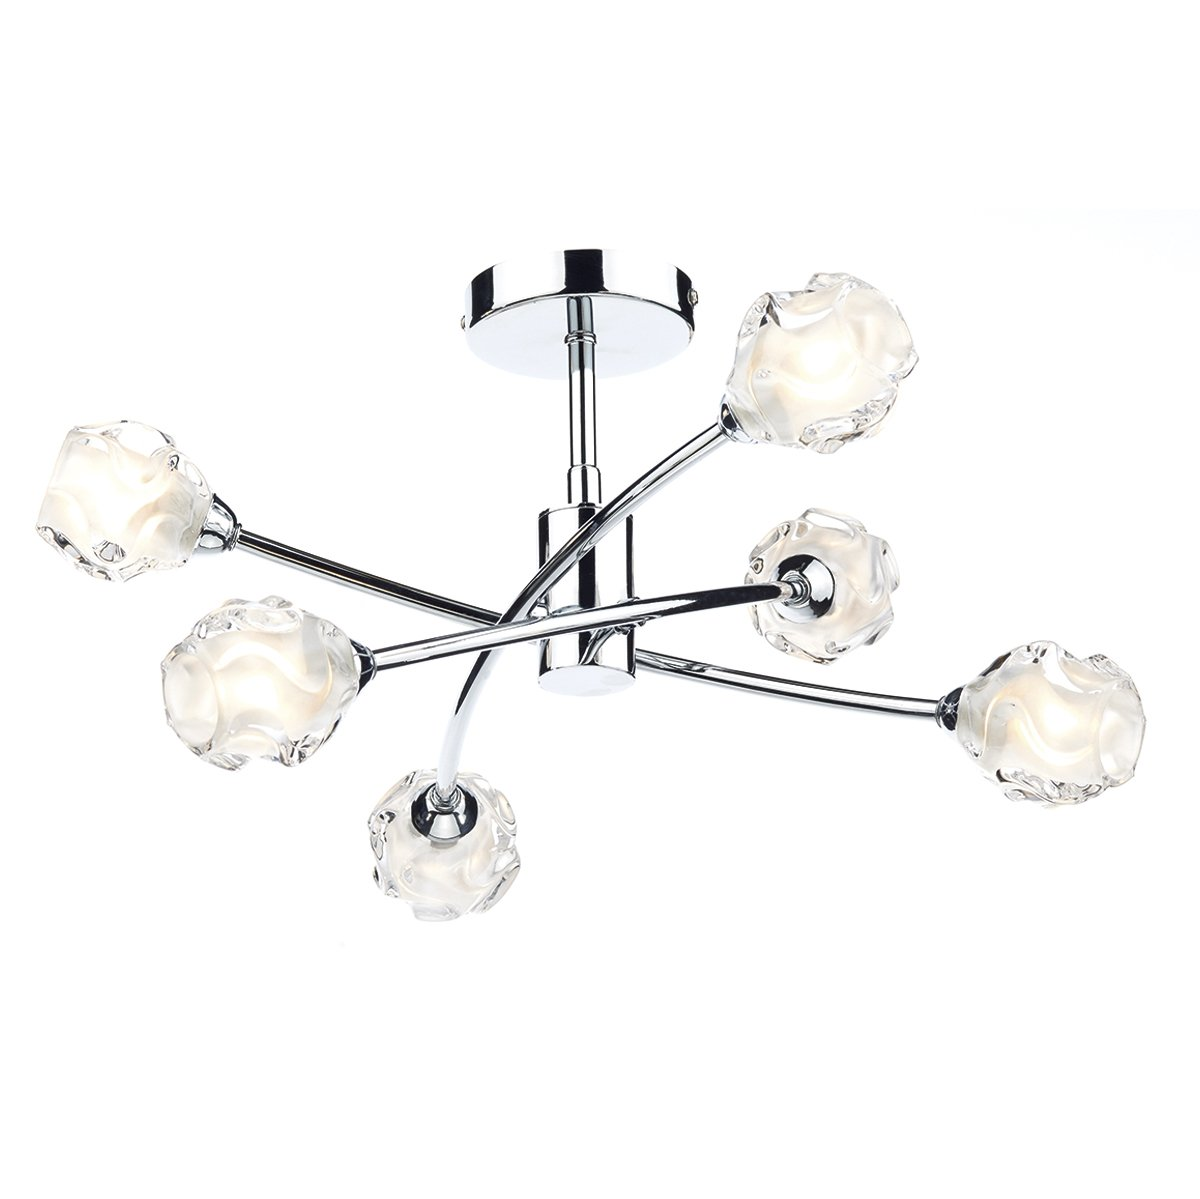 Seattle 6 Light Semi Flush Ceiling Light